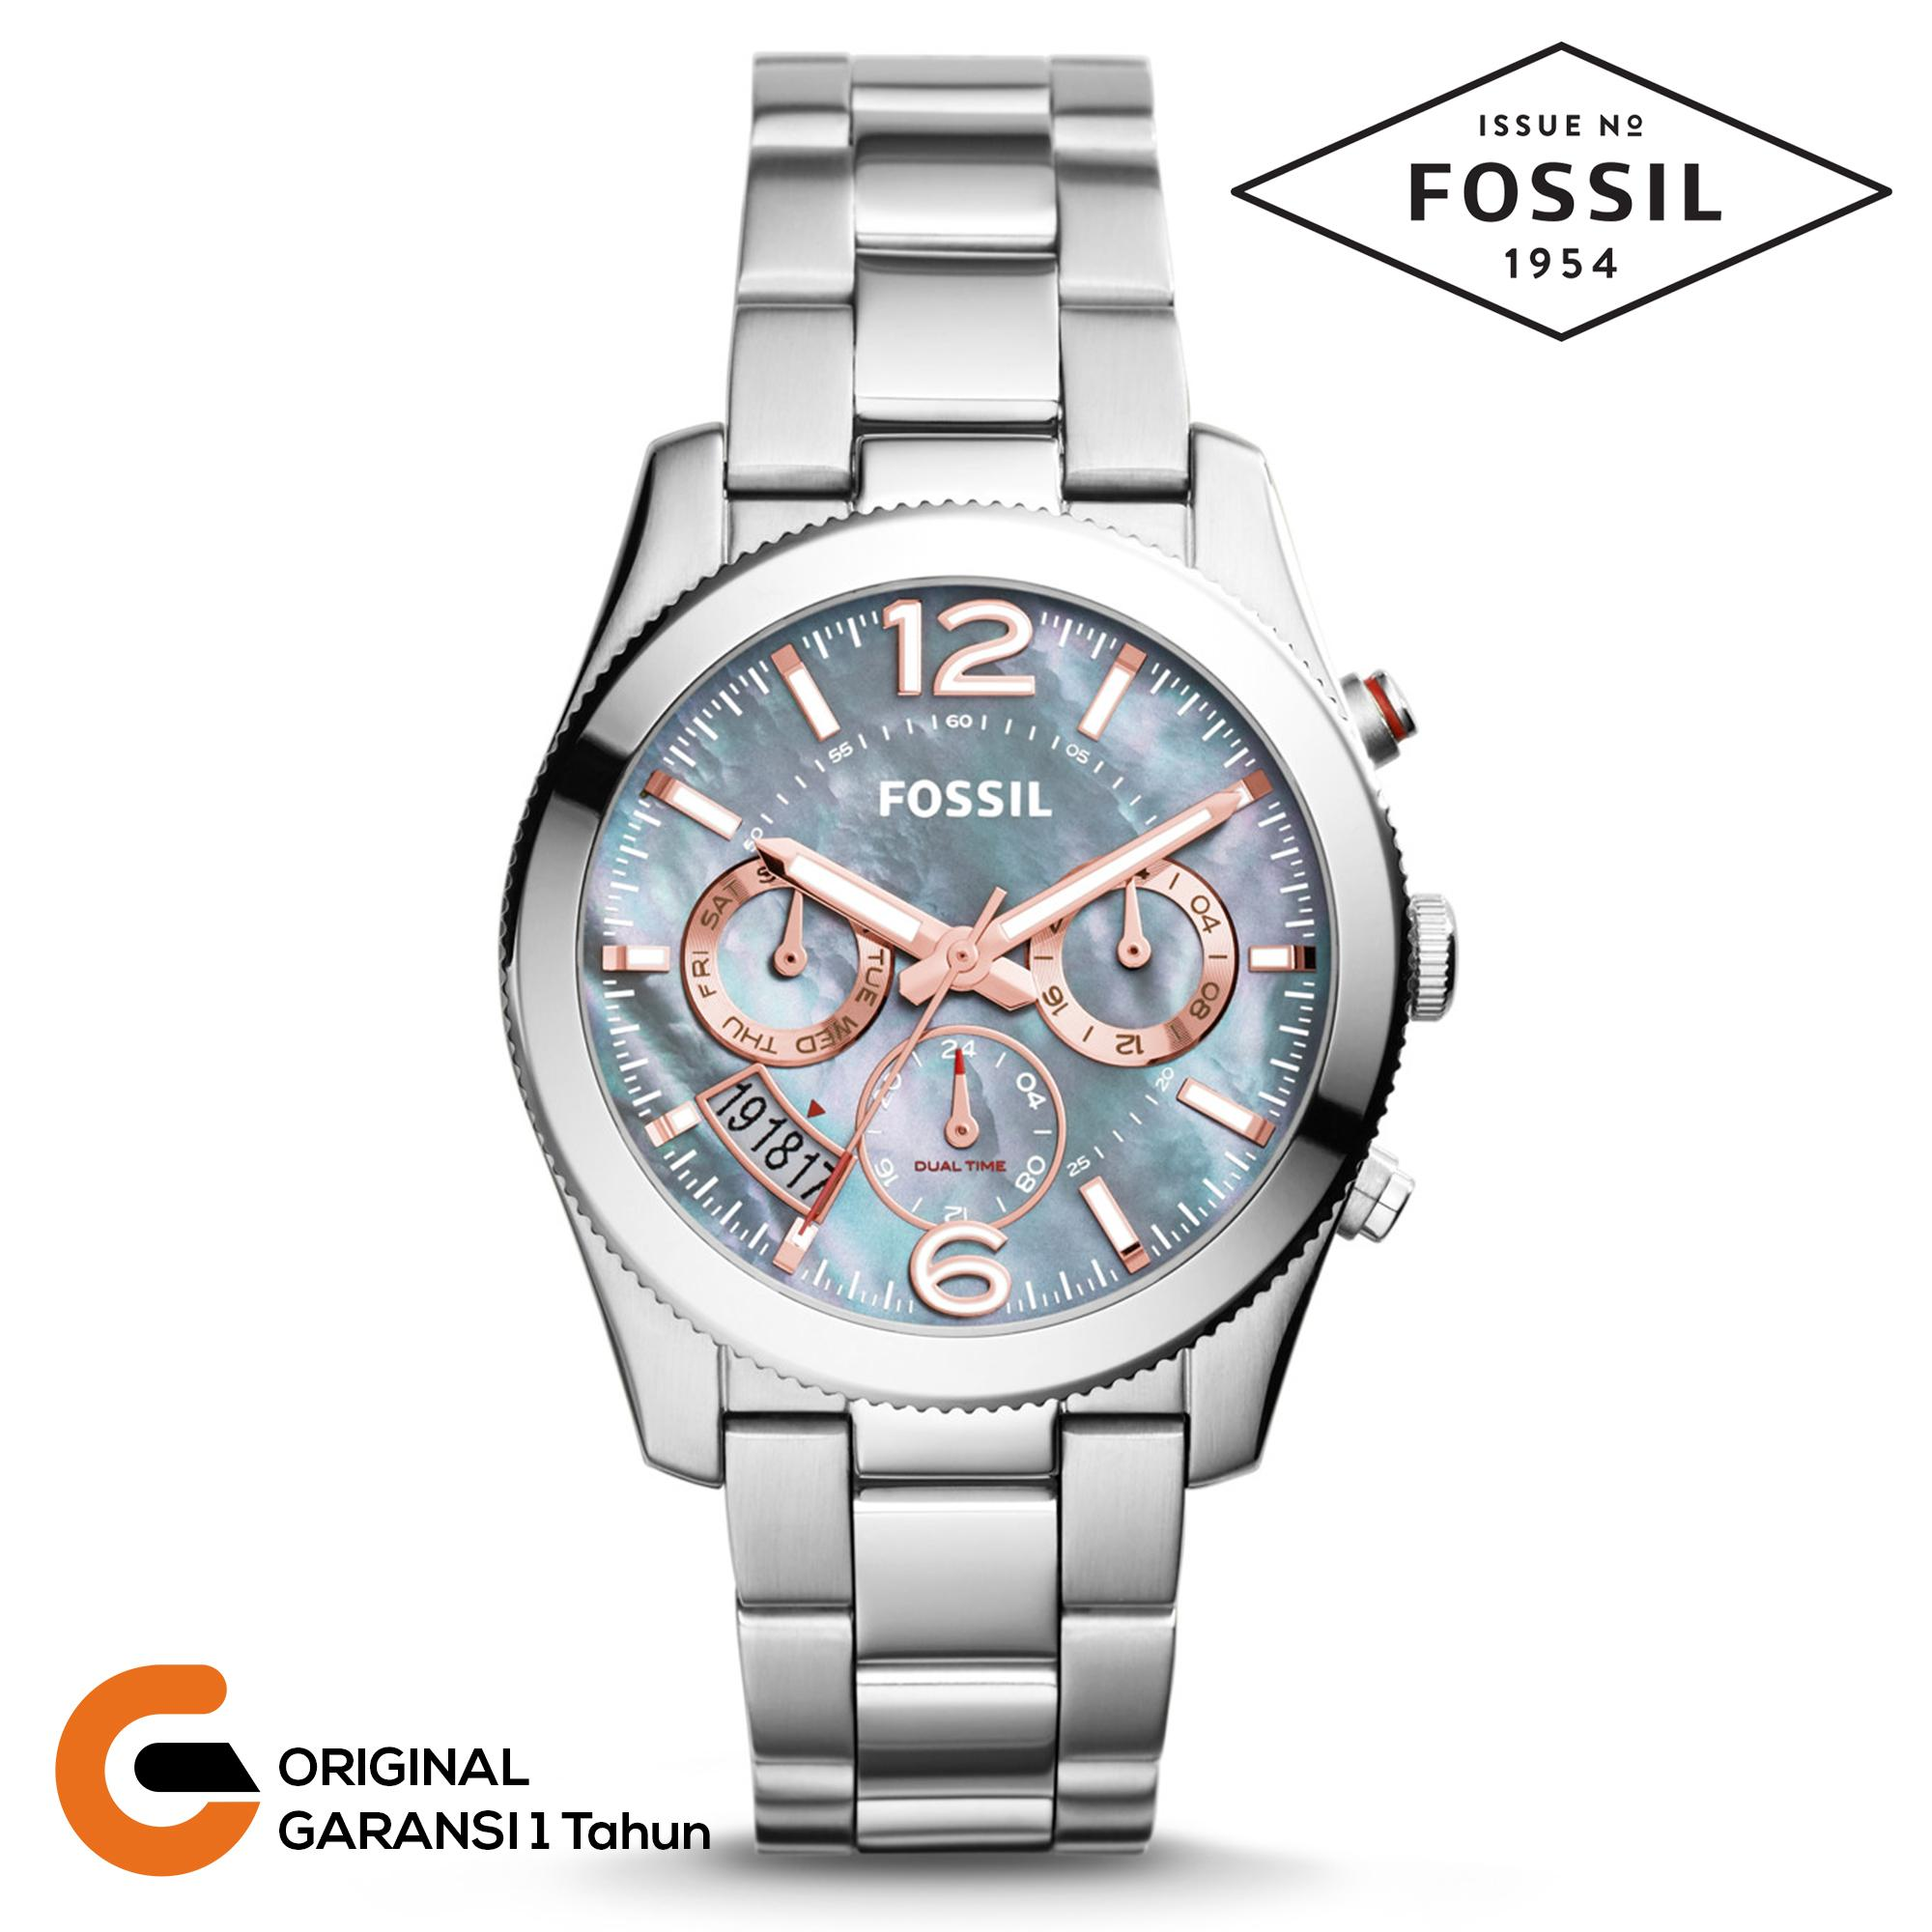 Fossil Jam Wanita Chronograph Tali Rantai Stainless Steel Quartz Multifunction Perfect Collection O